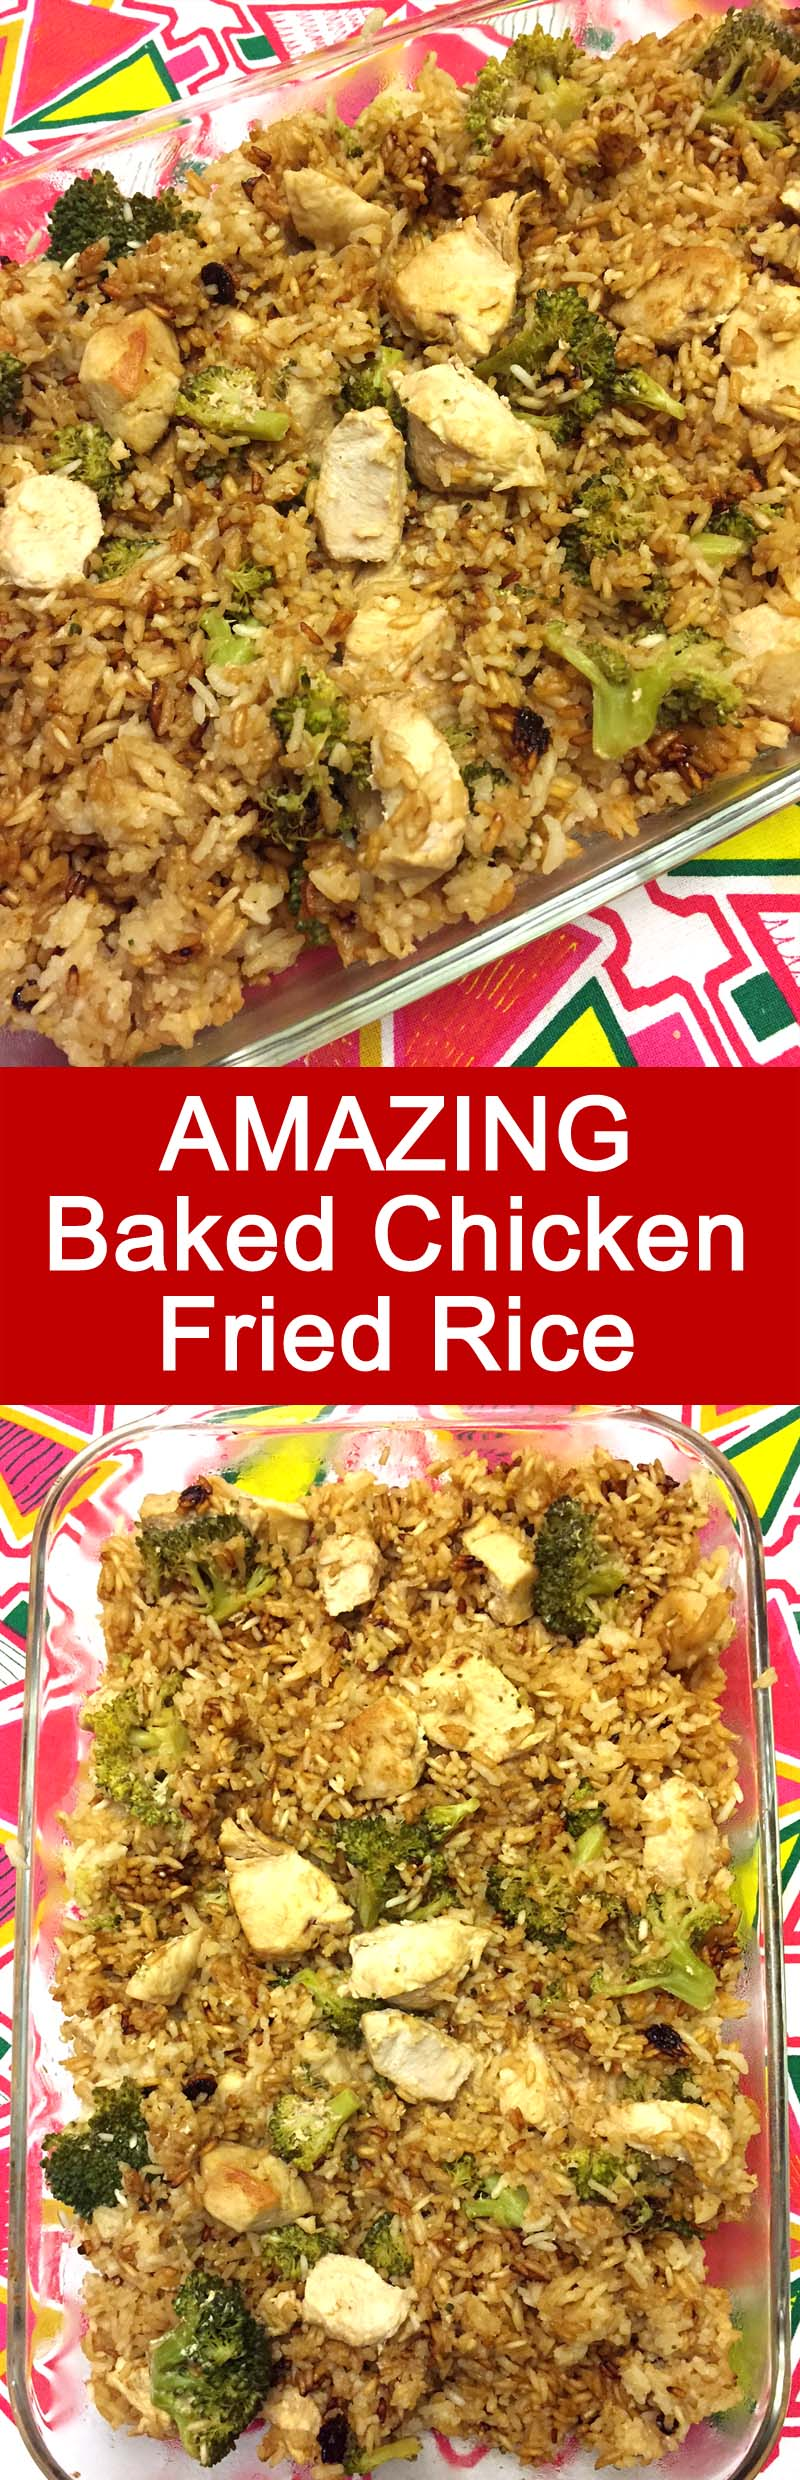 I love this baked chicken fried rice casserole! This is a perfect weeknight meal, so easy and yummy!